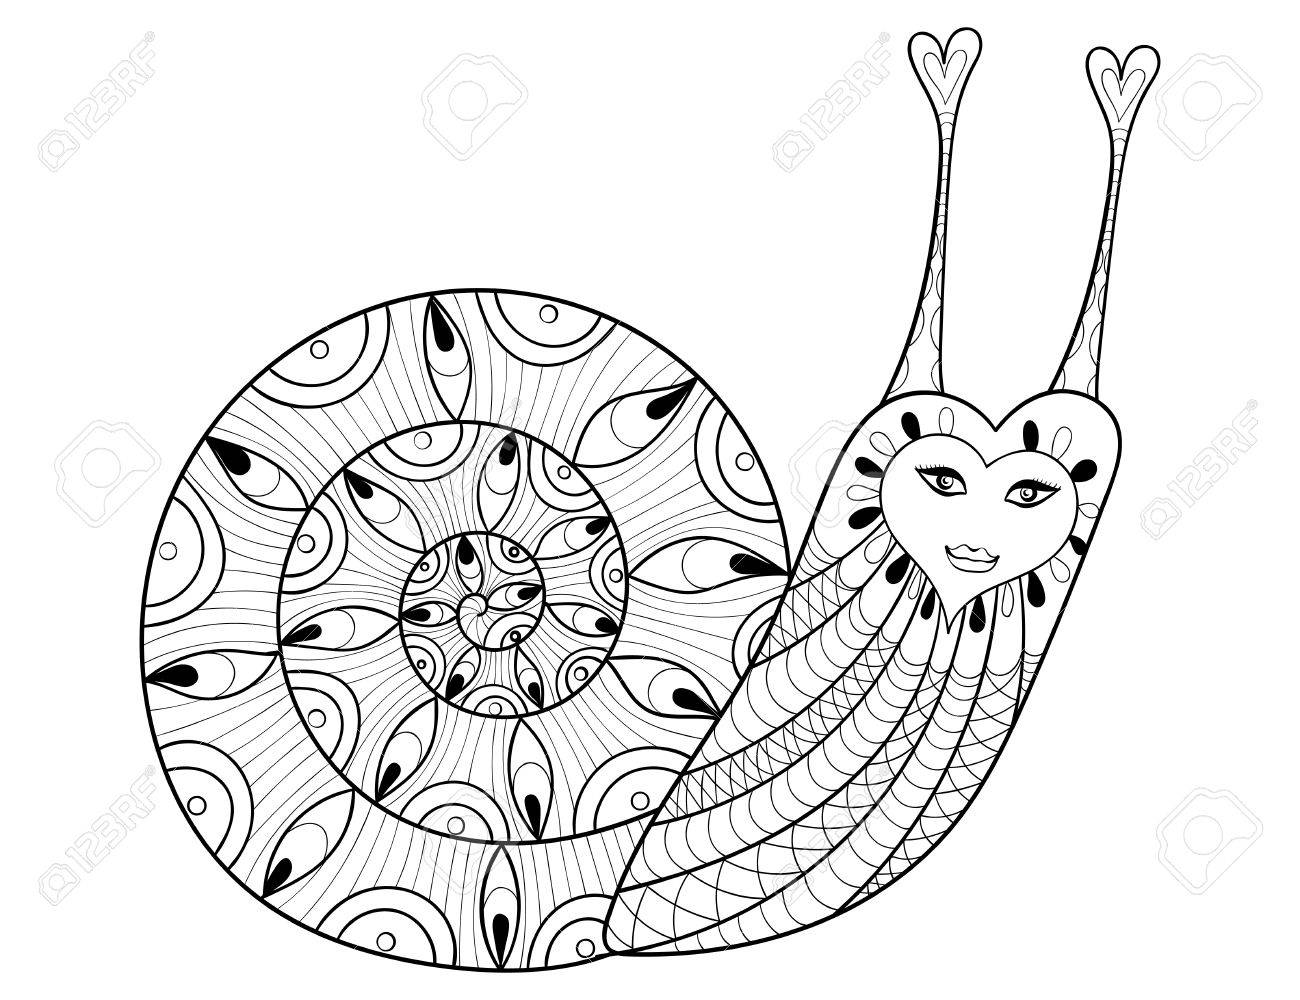 vector snail for adult coloring pages art therapy ethnic patterned t shirt print - Art Therapy Coloring Pages Animals